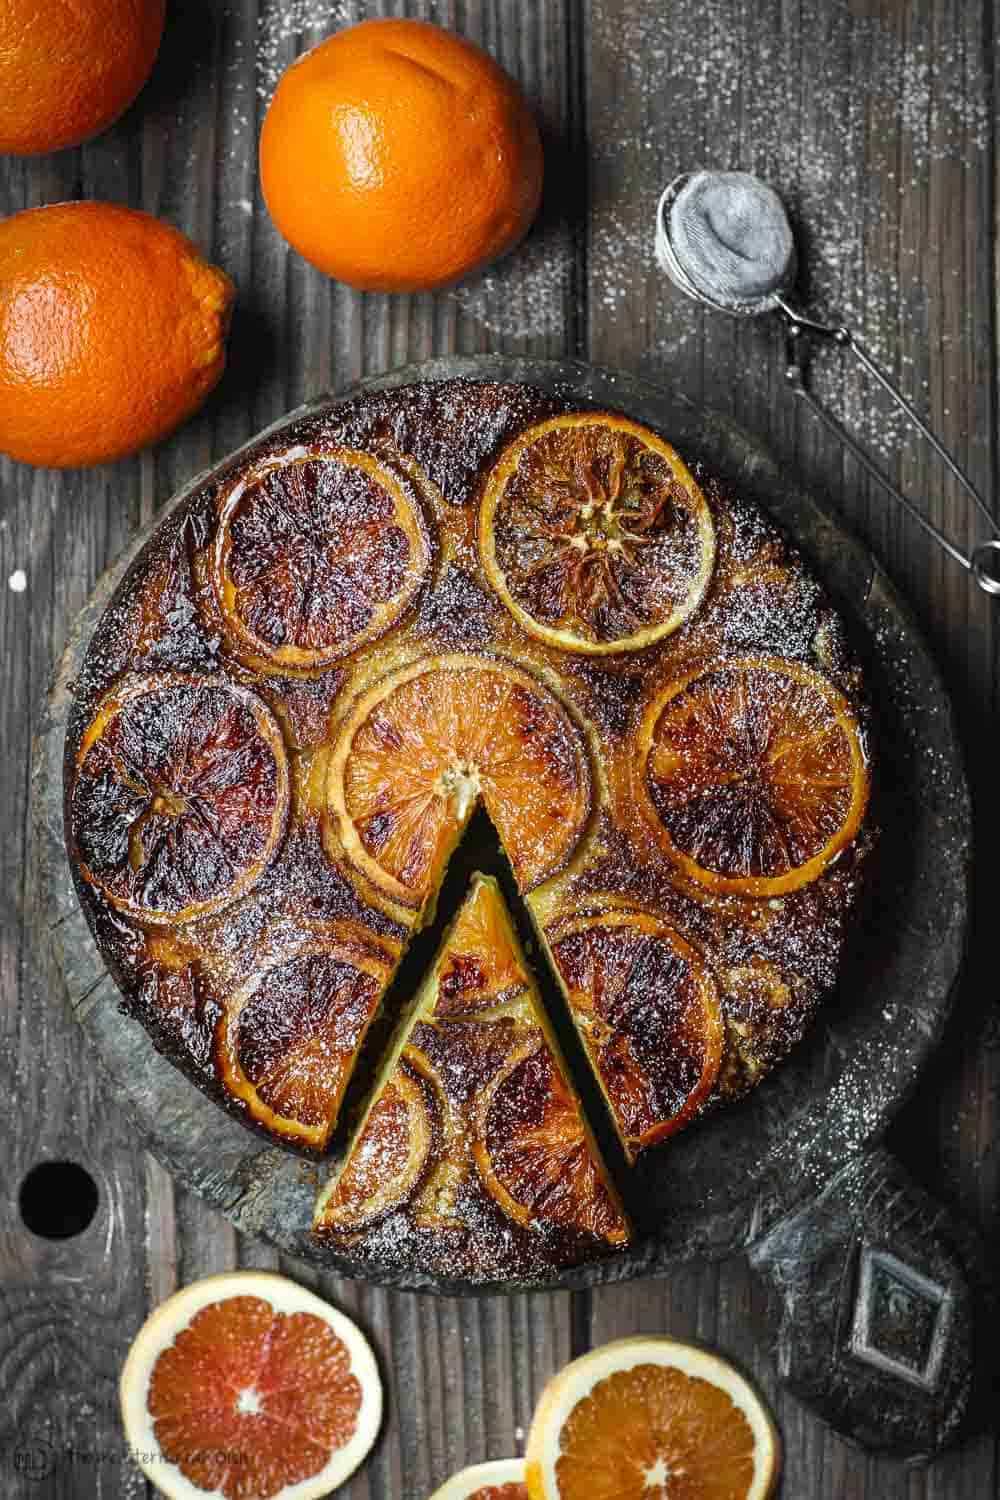 Ricotta cake with extra orange slices on the side